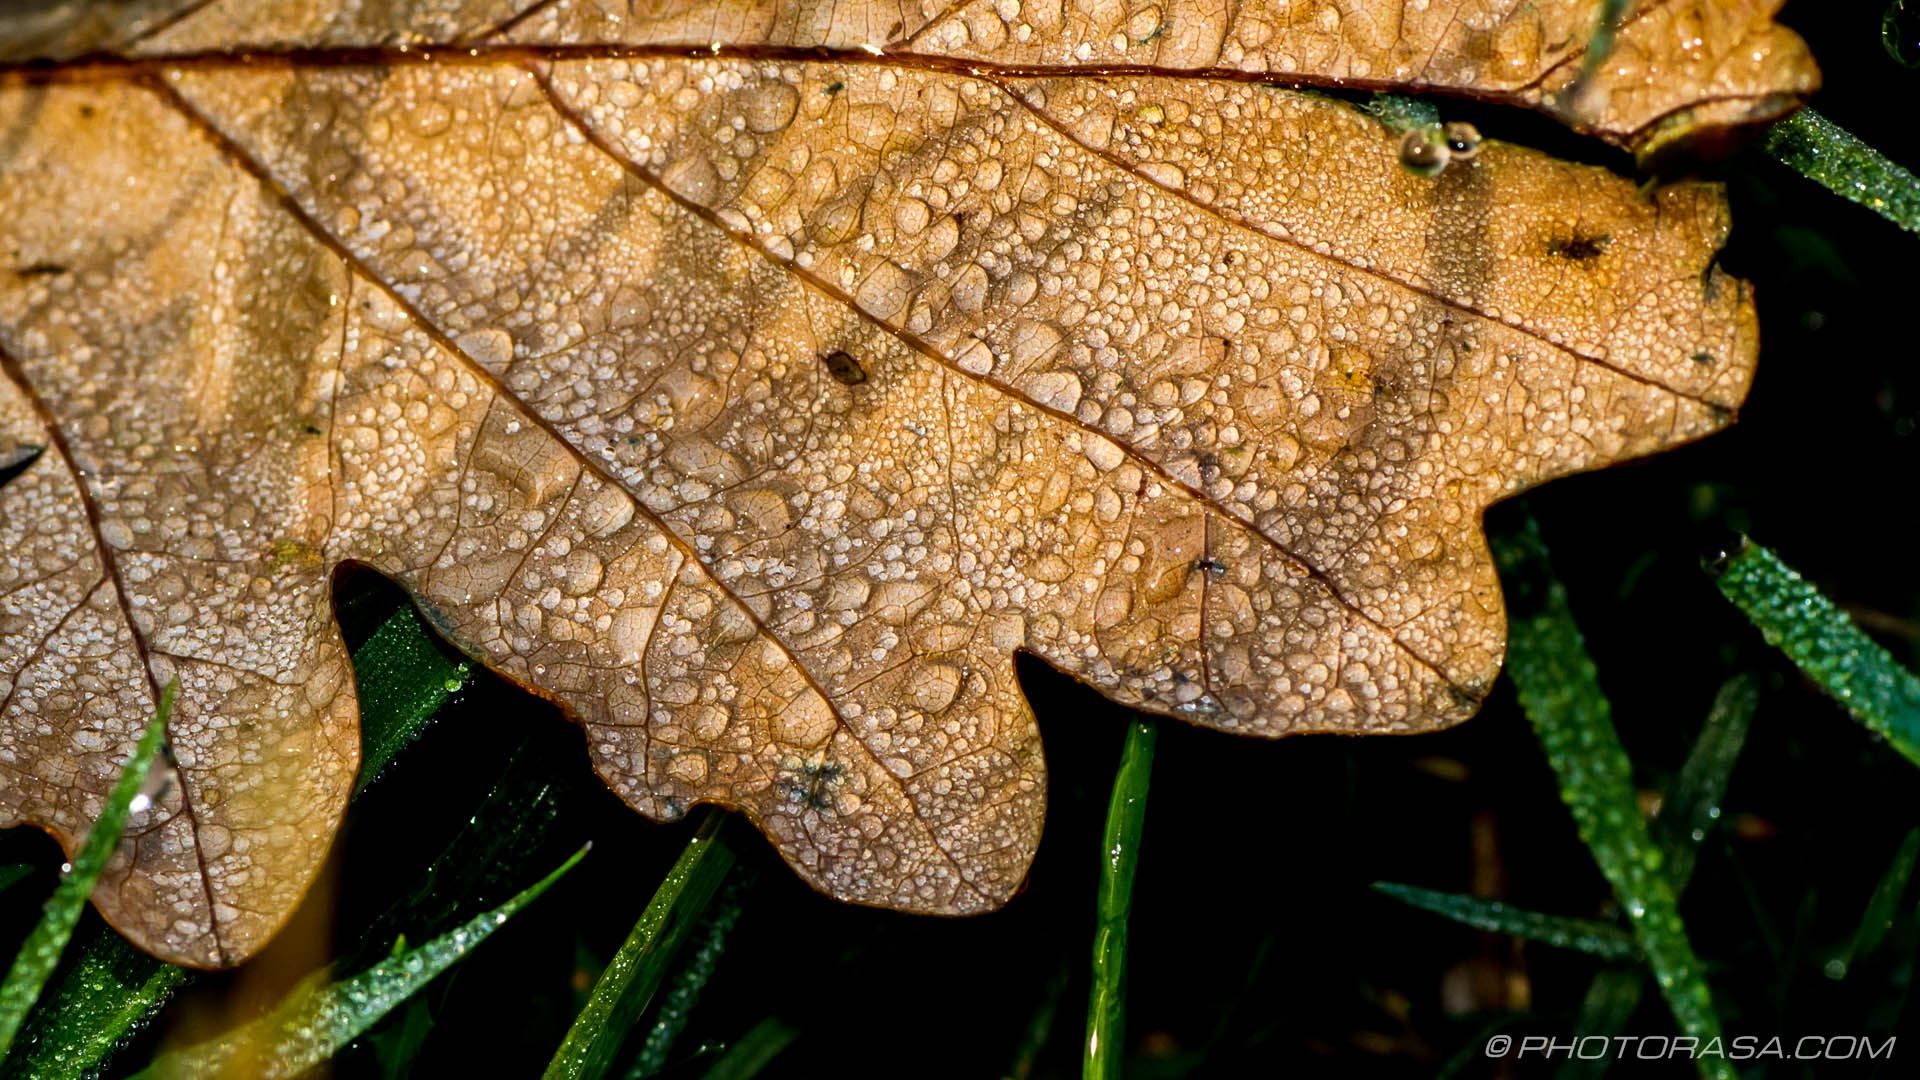 http://photorasa.com/leaves/brown-oak-leaf-with-dew-and-grass-shadow/